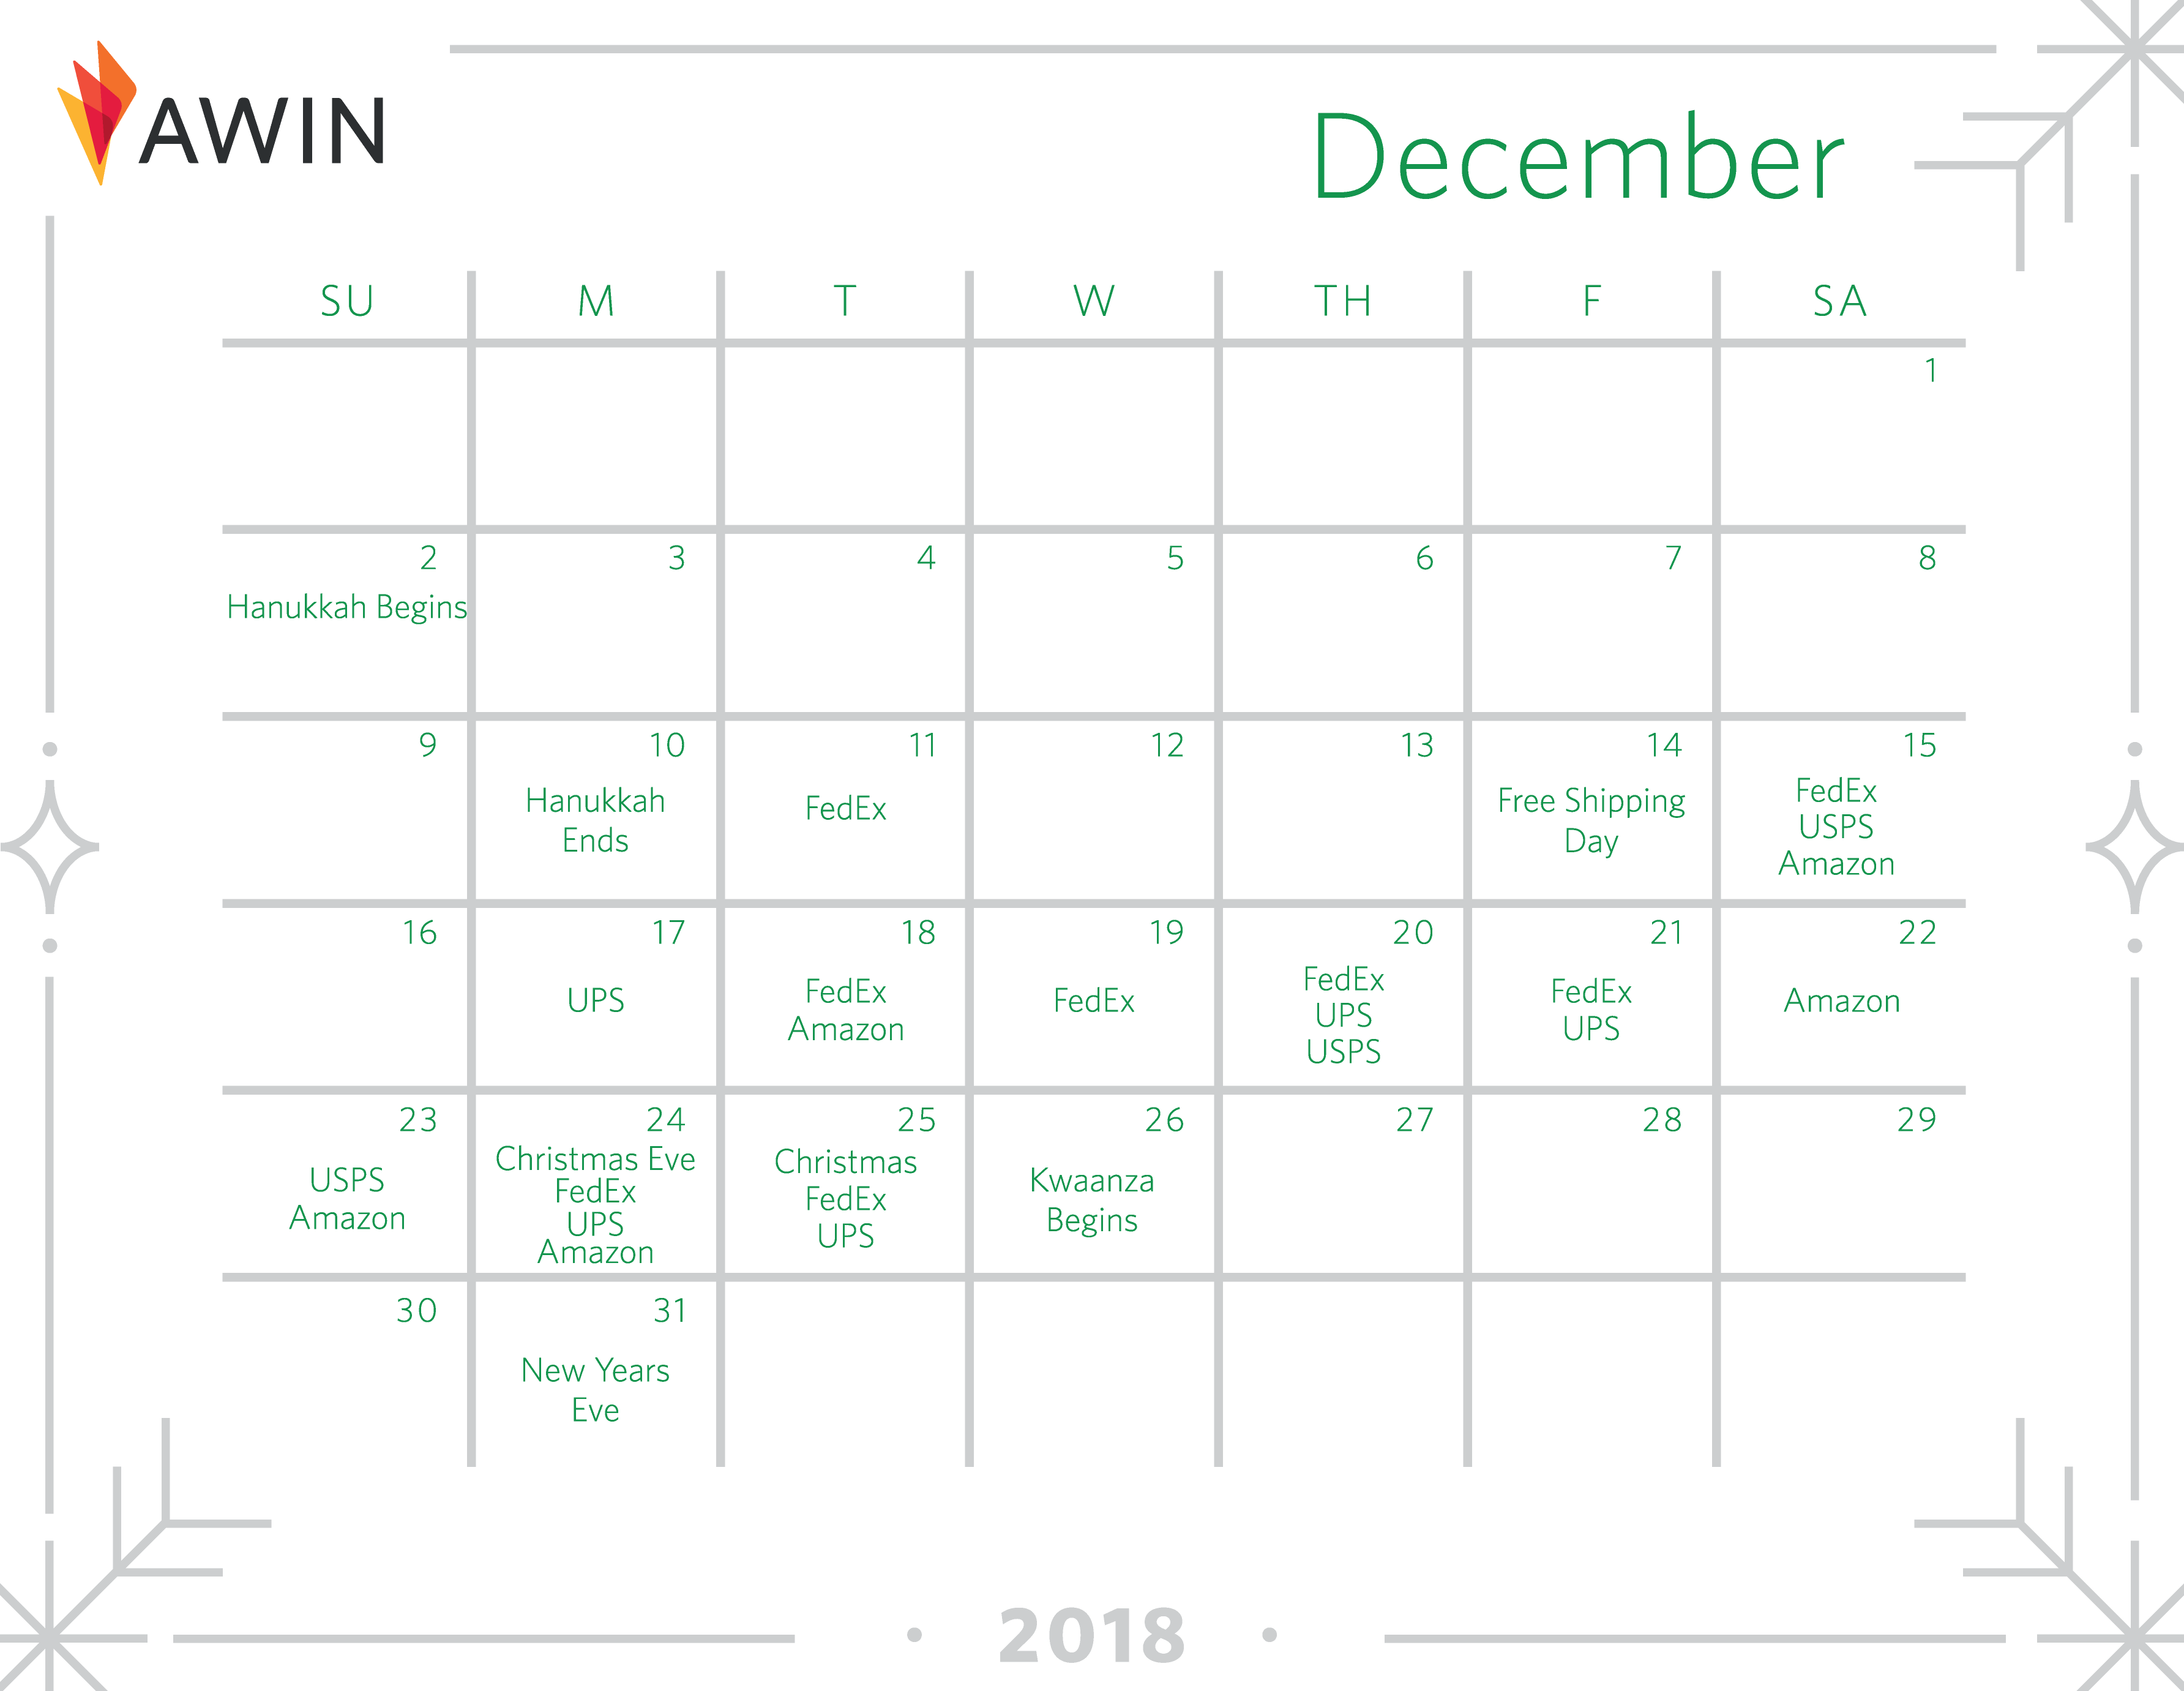 Important dates + deadlines in Q4 | Awin